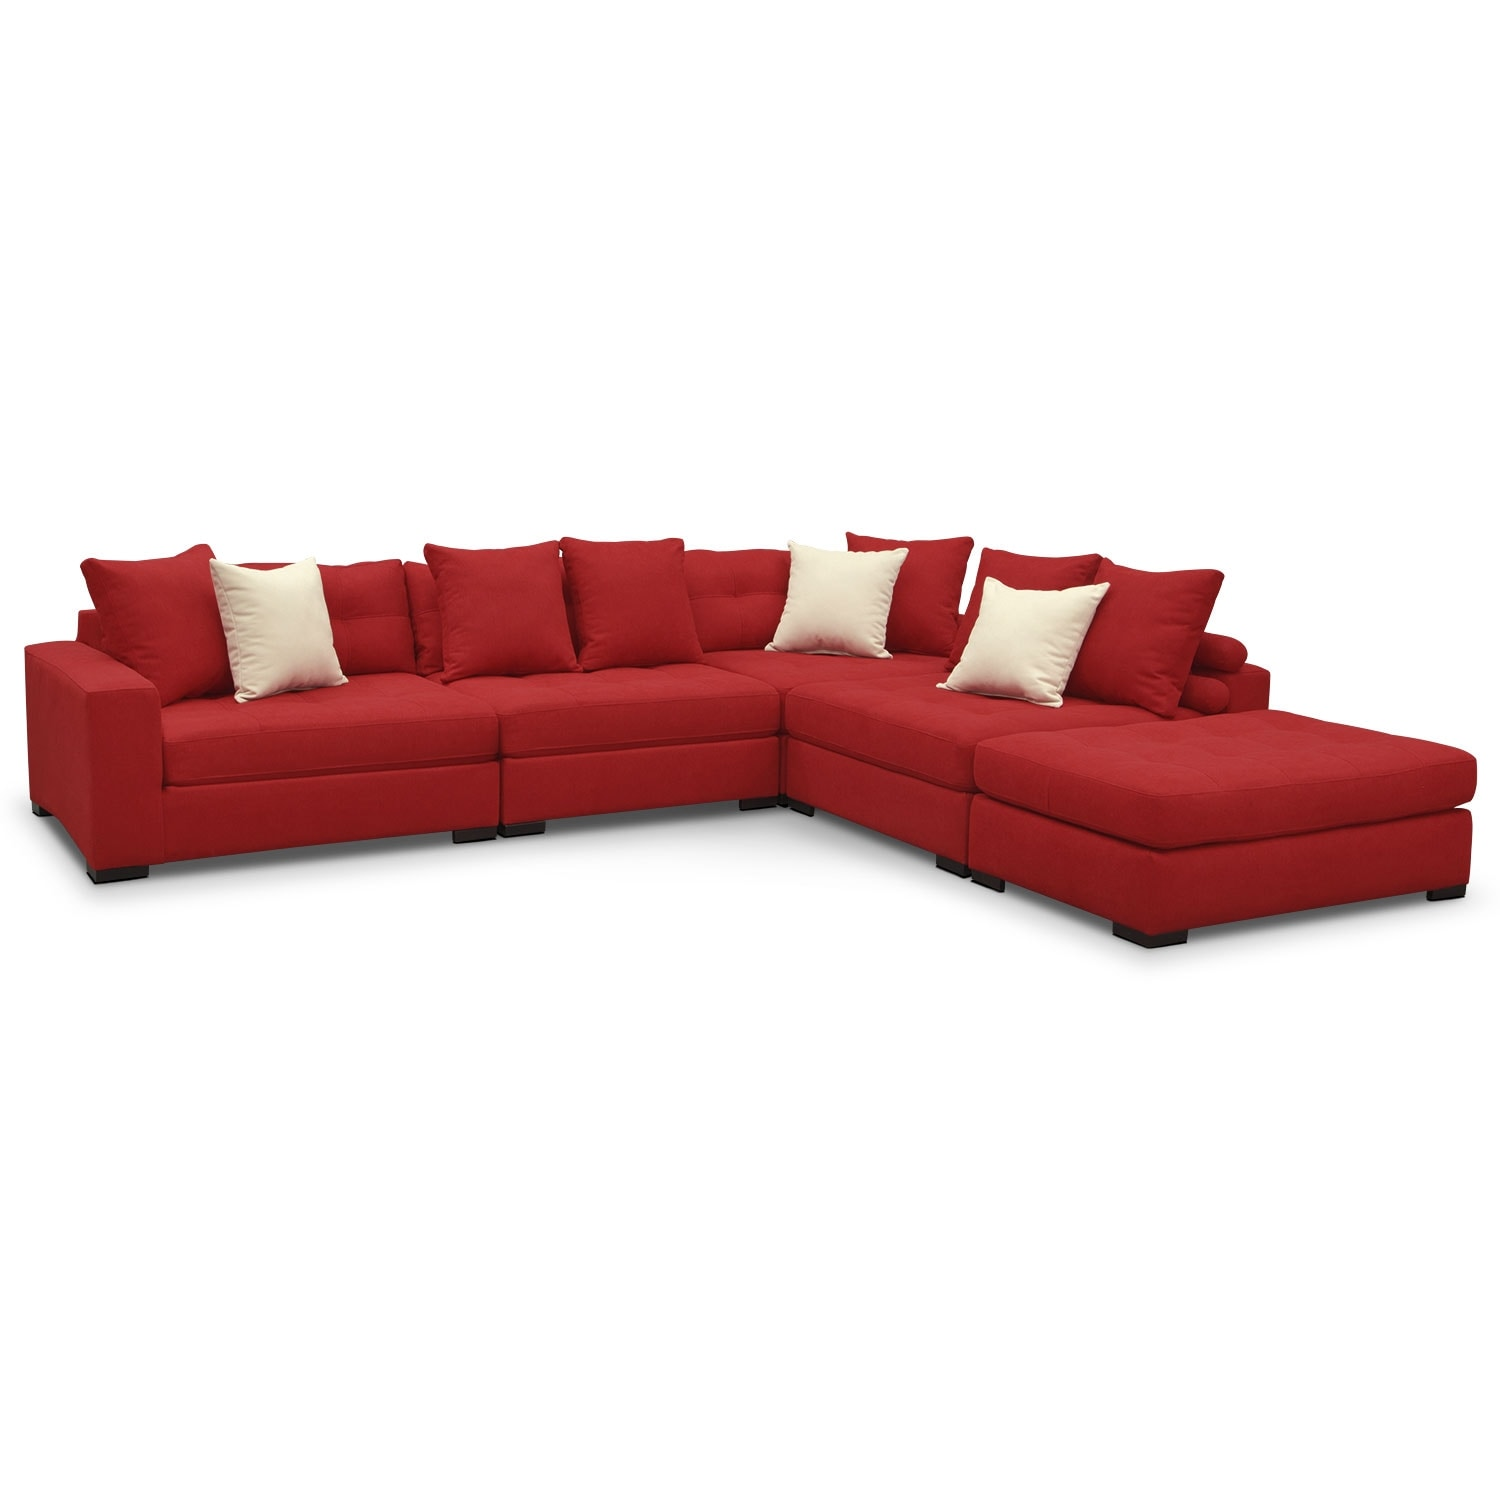 Venti 5Piece Sectional with Cocktail Ottoman Red American